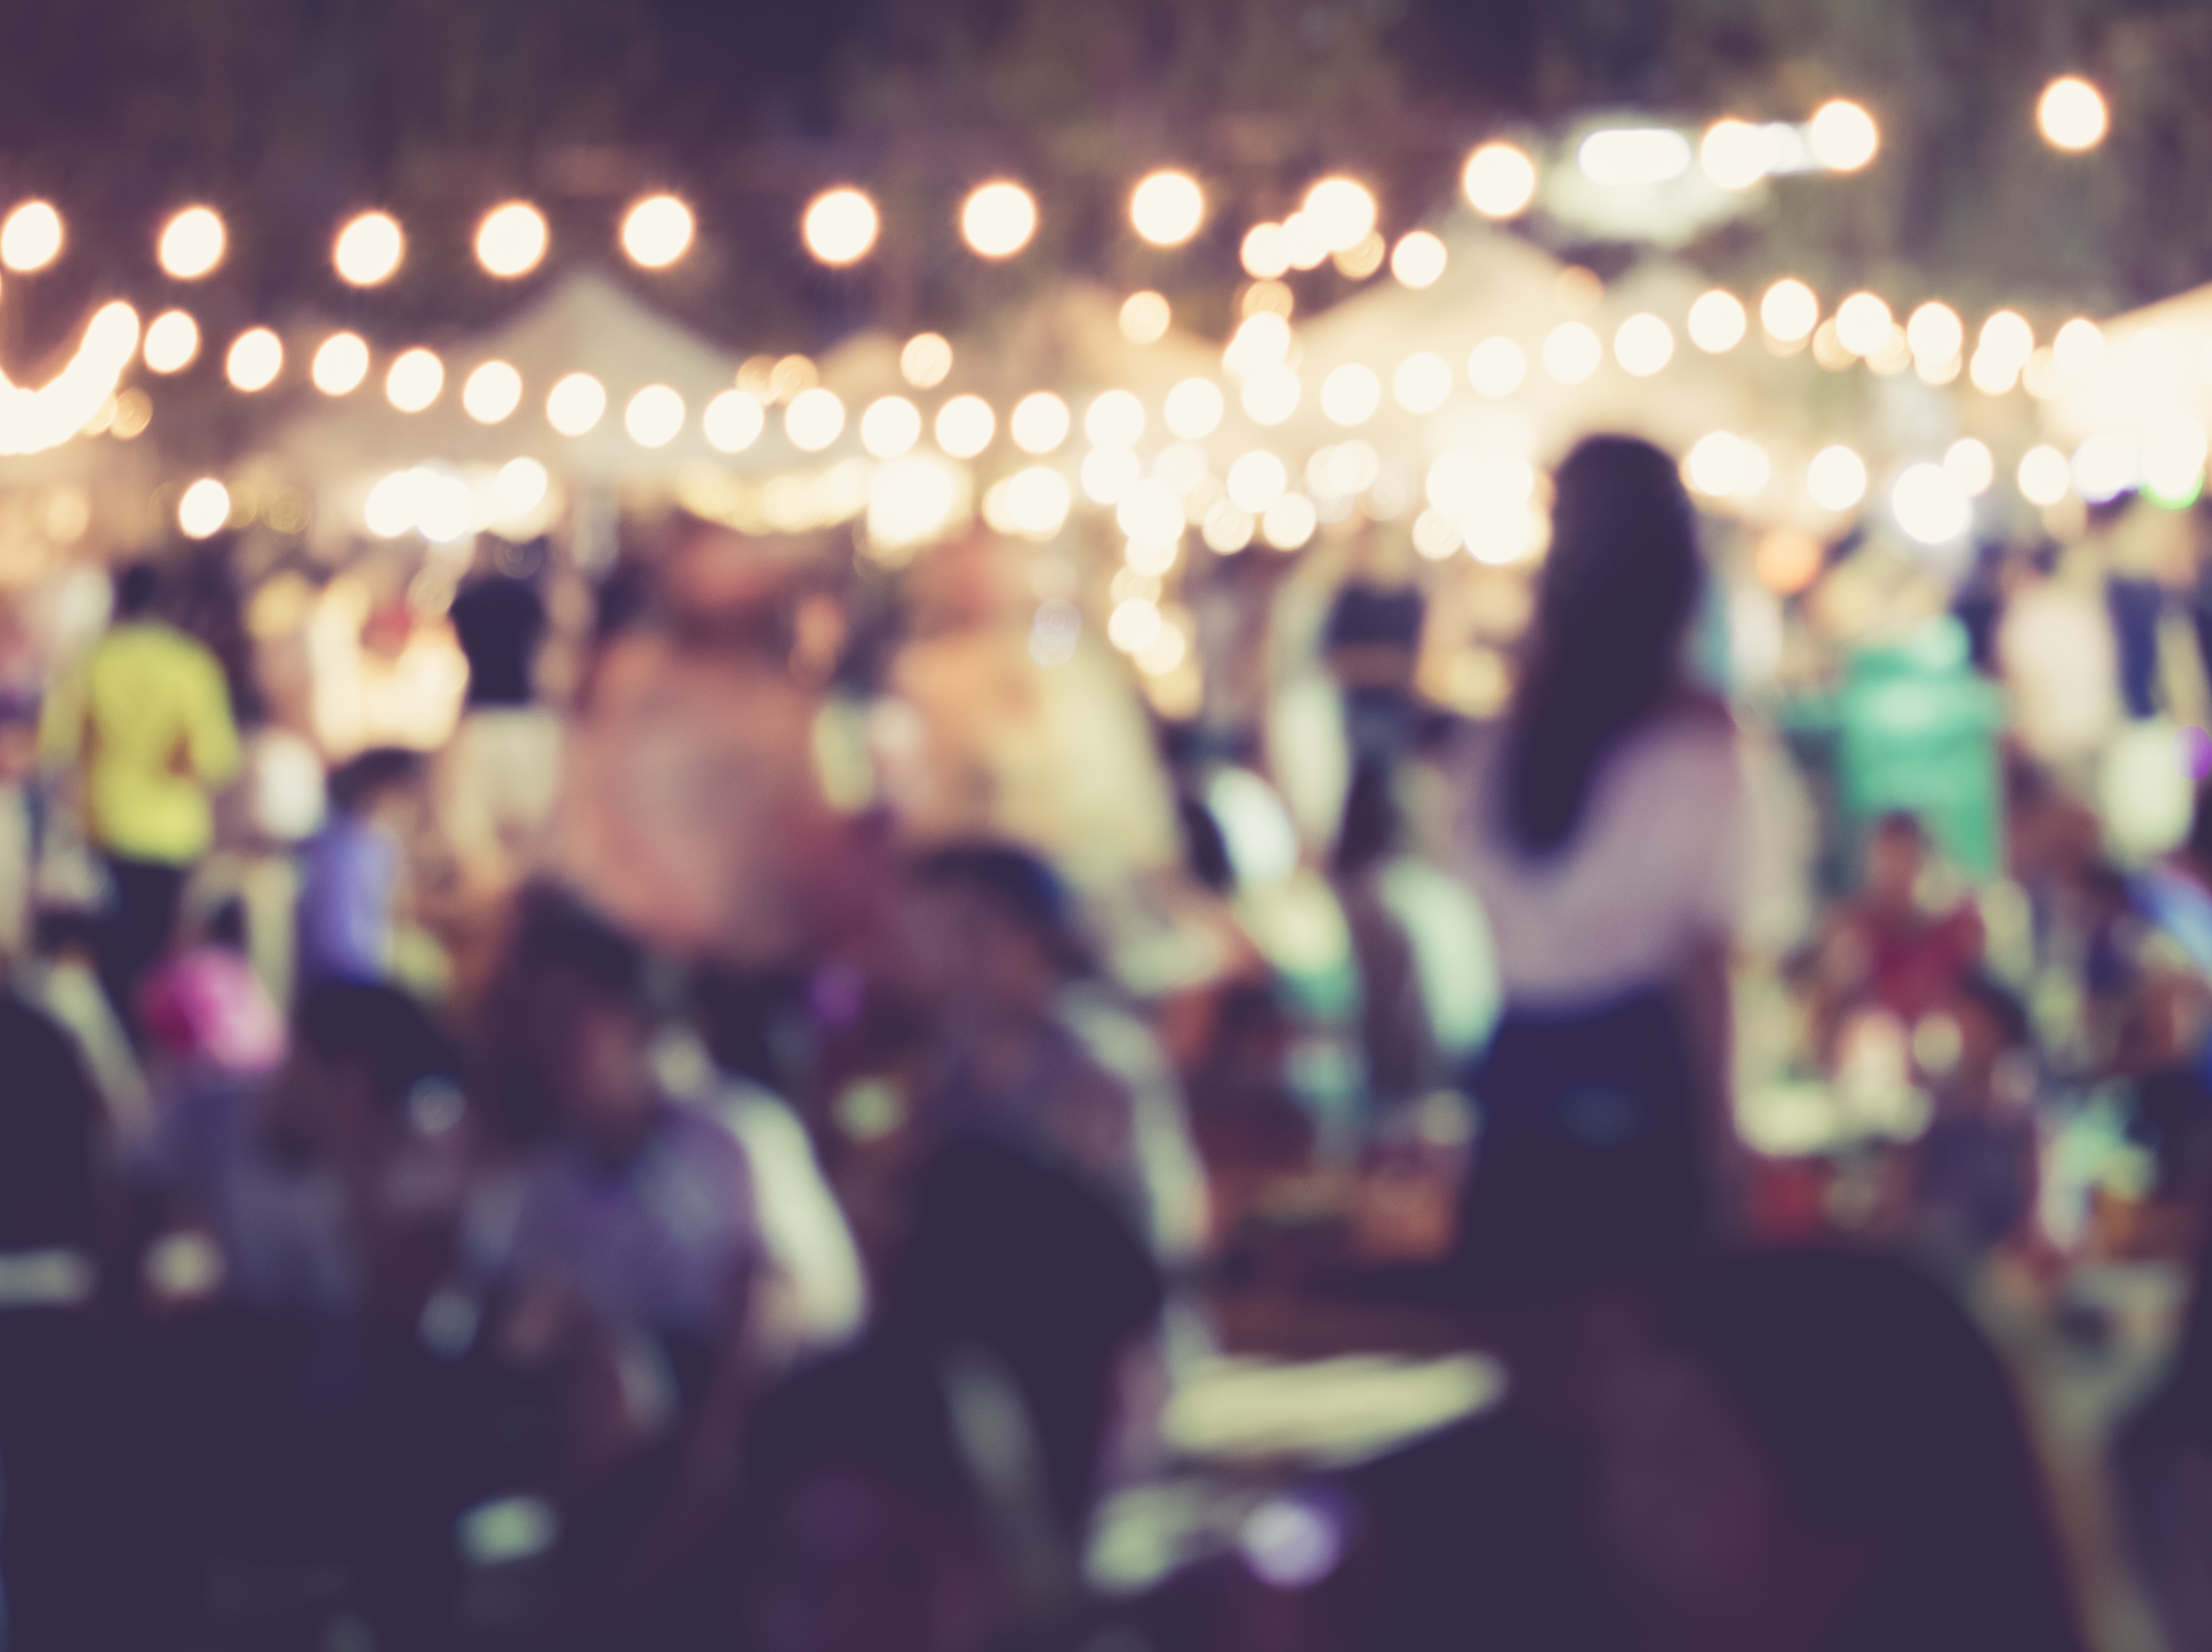 Festival-Event-Party-with-People-Blurred-Background-503861716_4423x3303